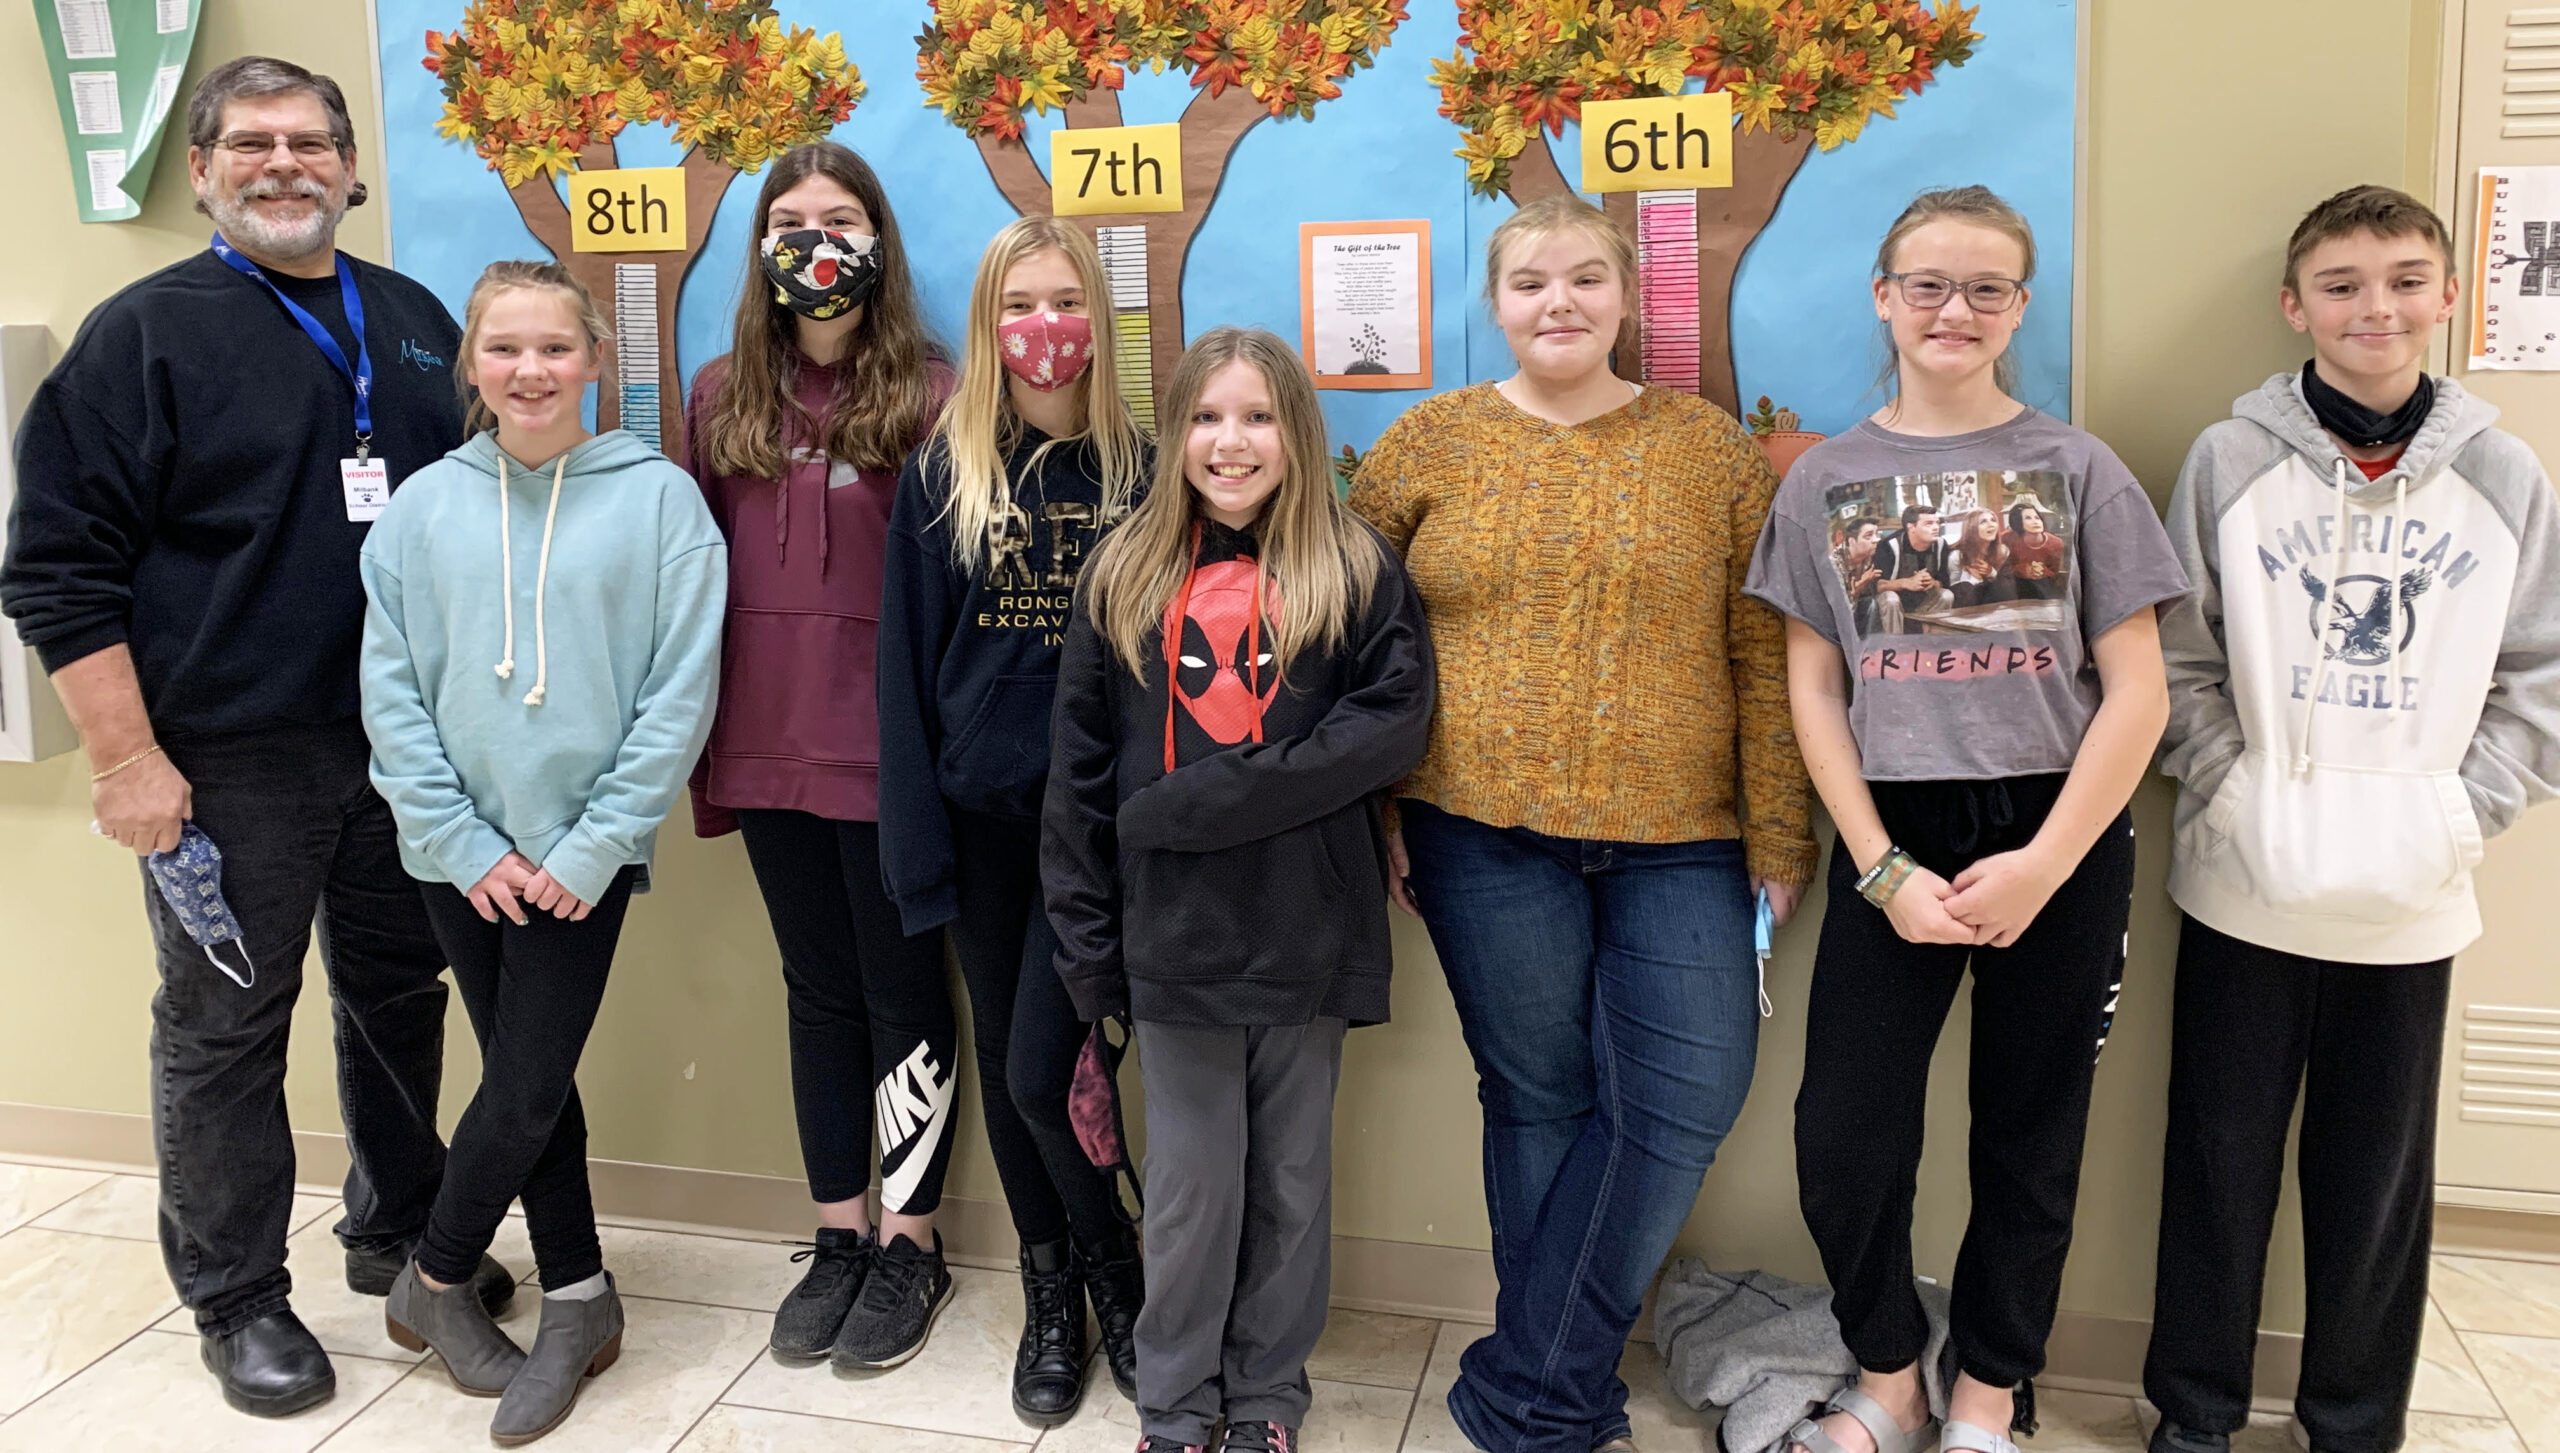 Milbank Middle School Raises Funds to Purchase Trees